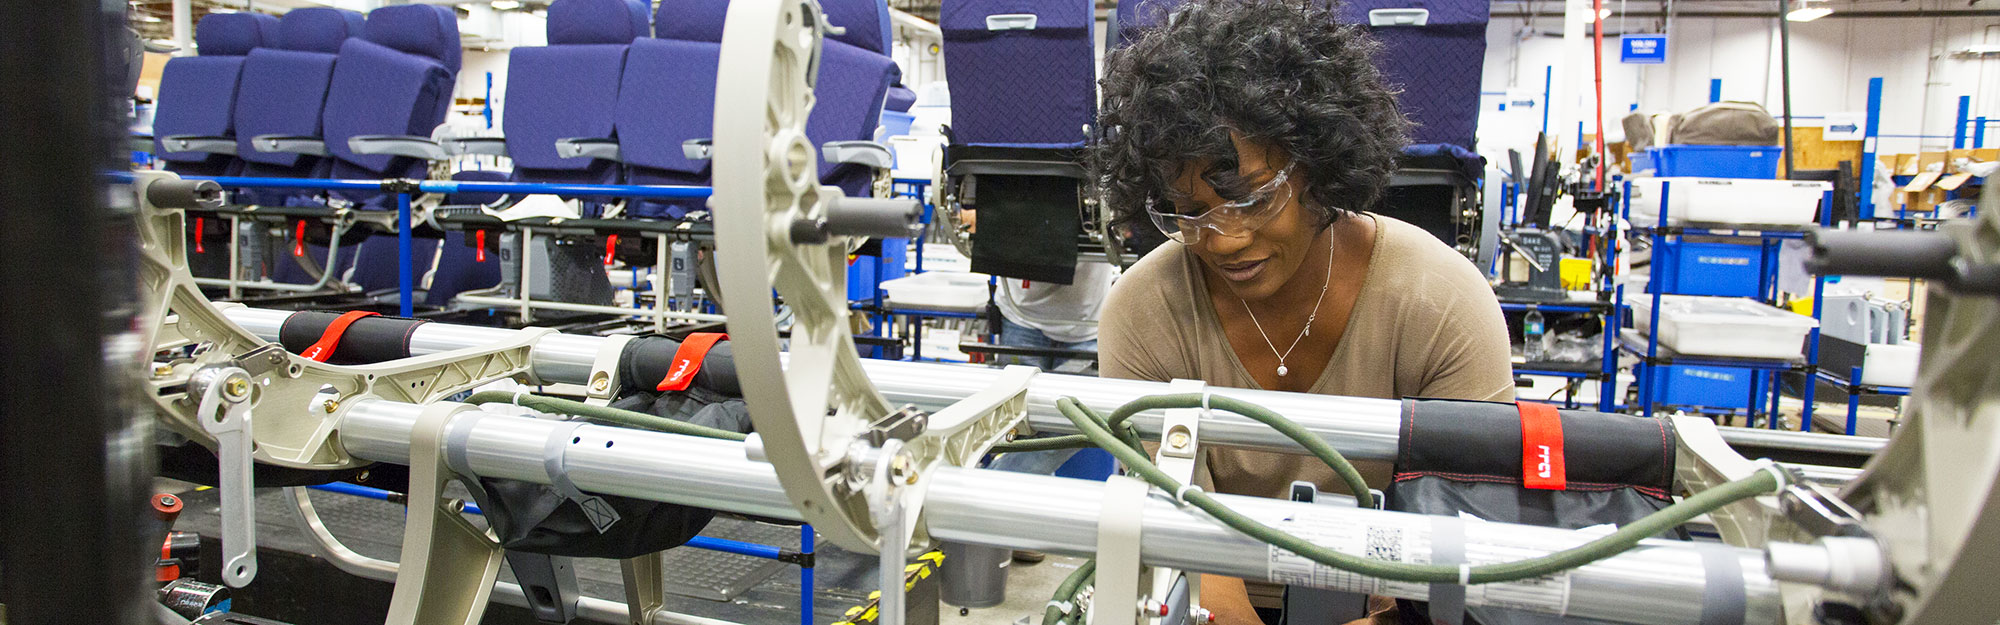 Woman repairing airplane seat in factory